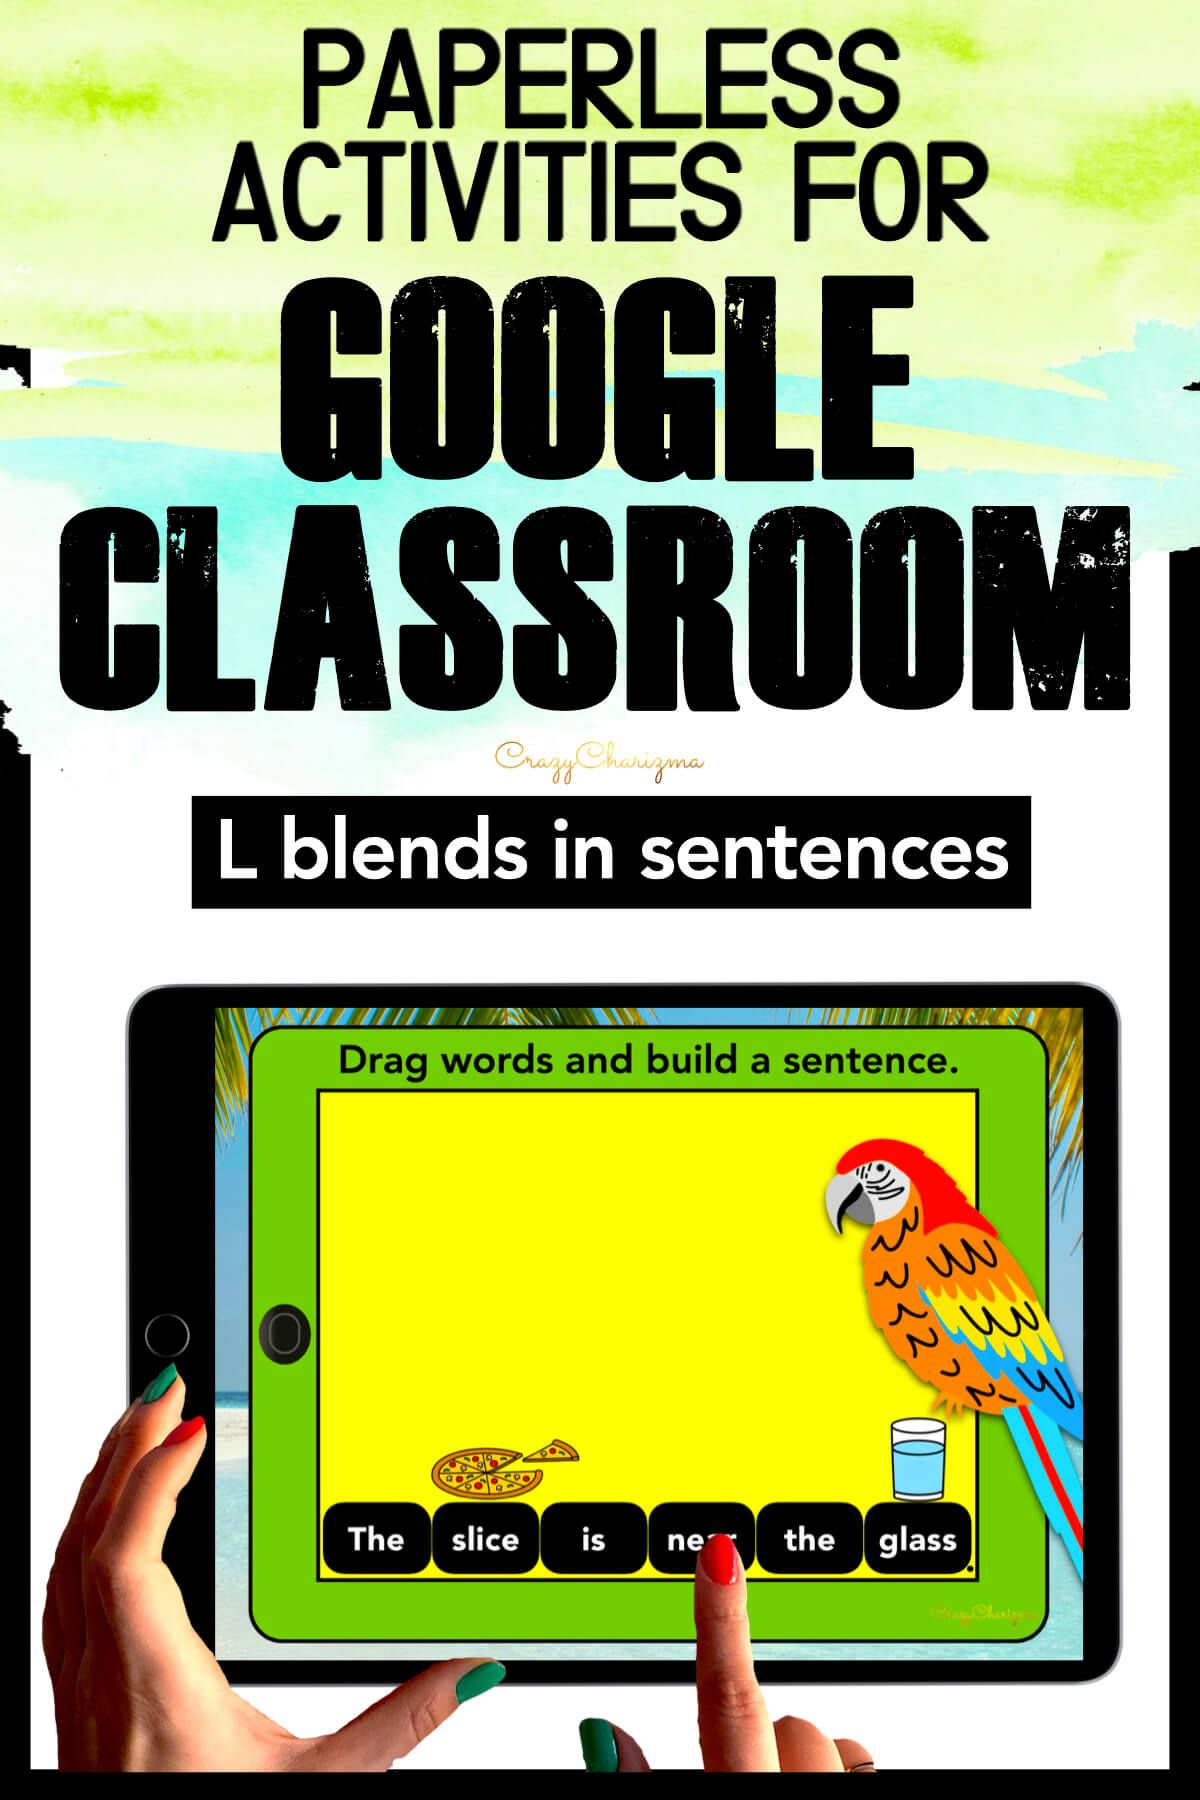 Need to practice beginning L BLENDS in sentences? Check out these interactive slides for Google Classroom. Kids will drag words and build sentences in the tropics!